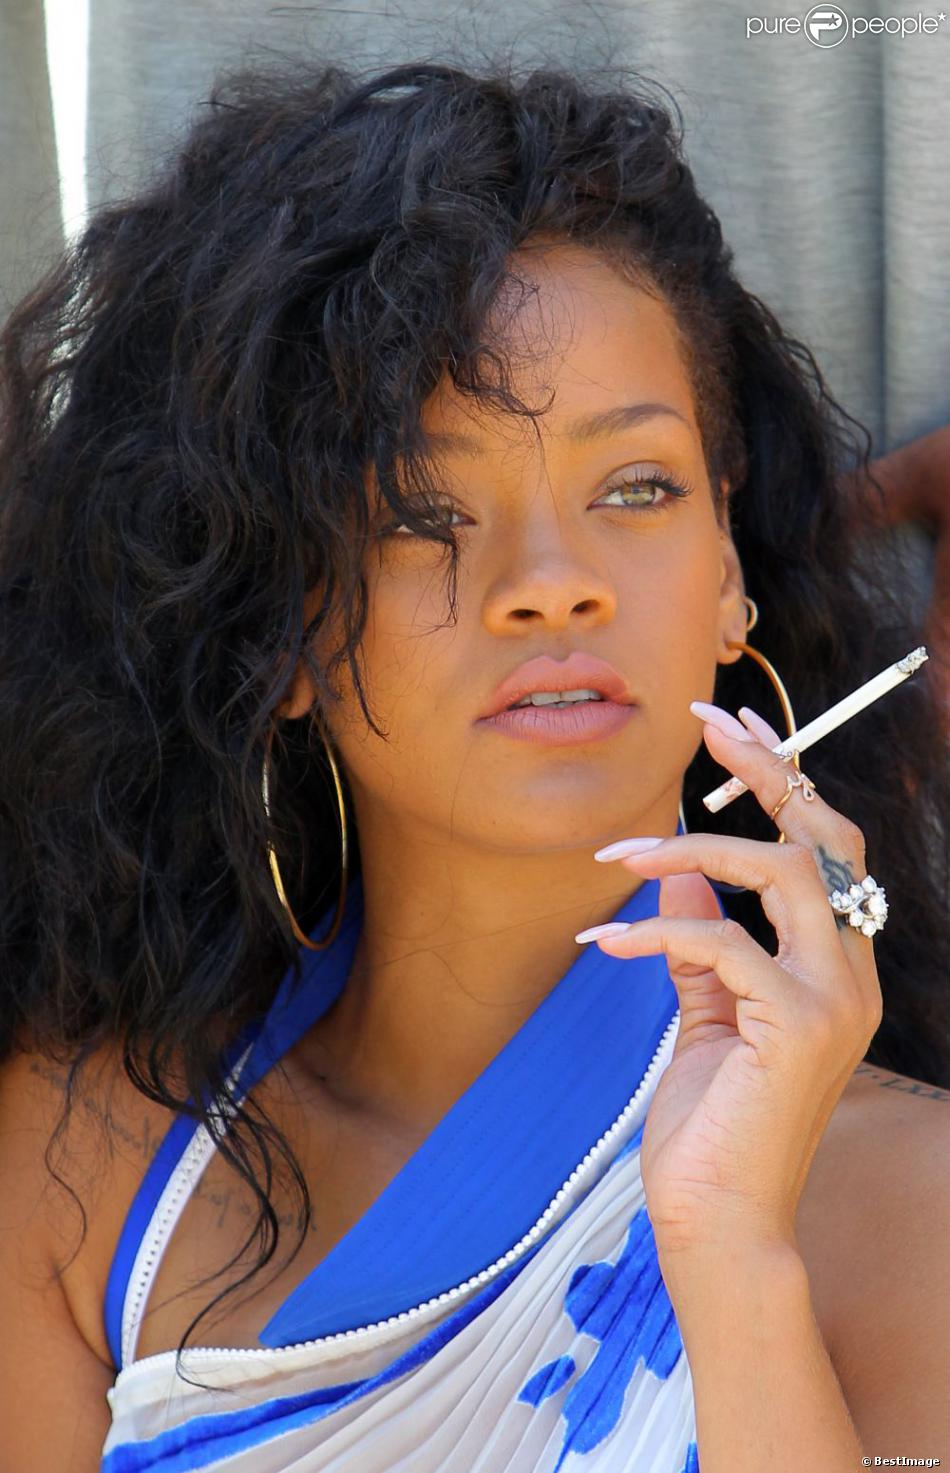 Rihanna smoking a cigarette (or weed)